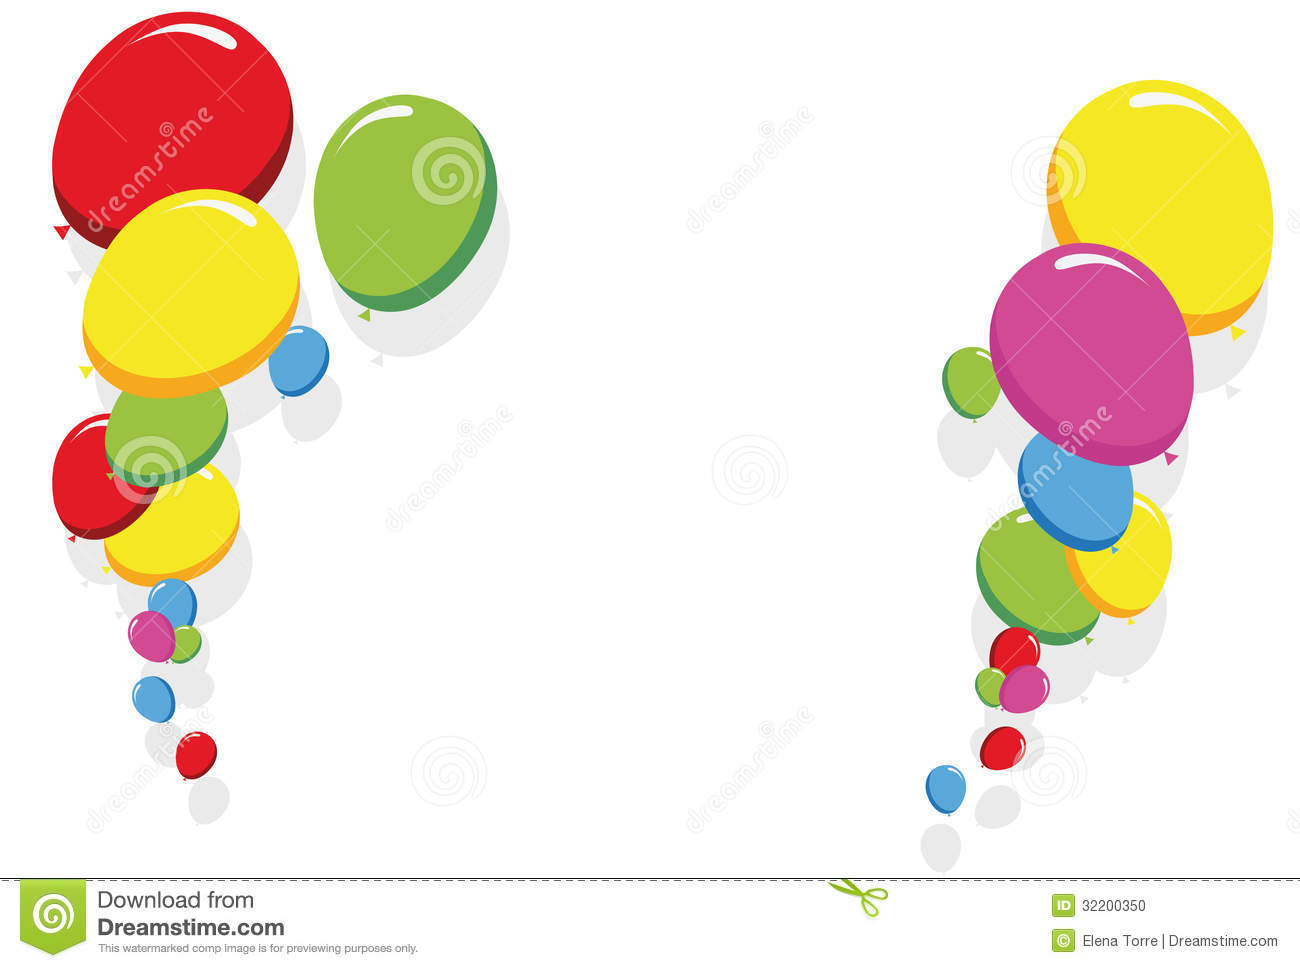 50th birthday border clip art ; d176da73359d198373a64450125b4f2f_colorful-balloons-border-vector-stock-photo-image-32200350-free-birthday-clipart-borders-and-frames_1300-968